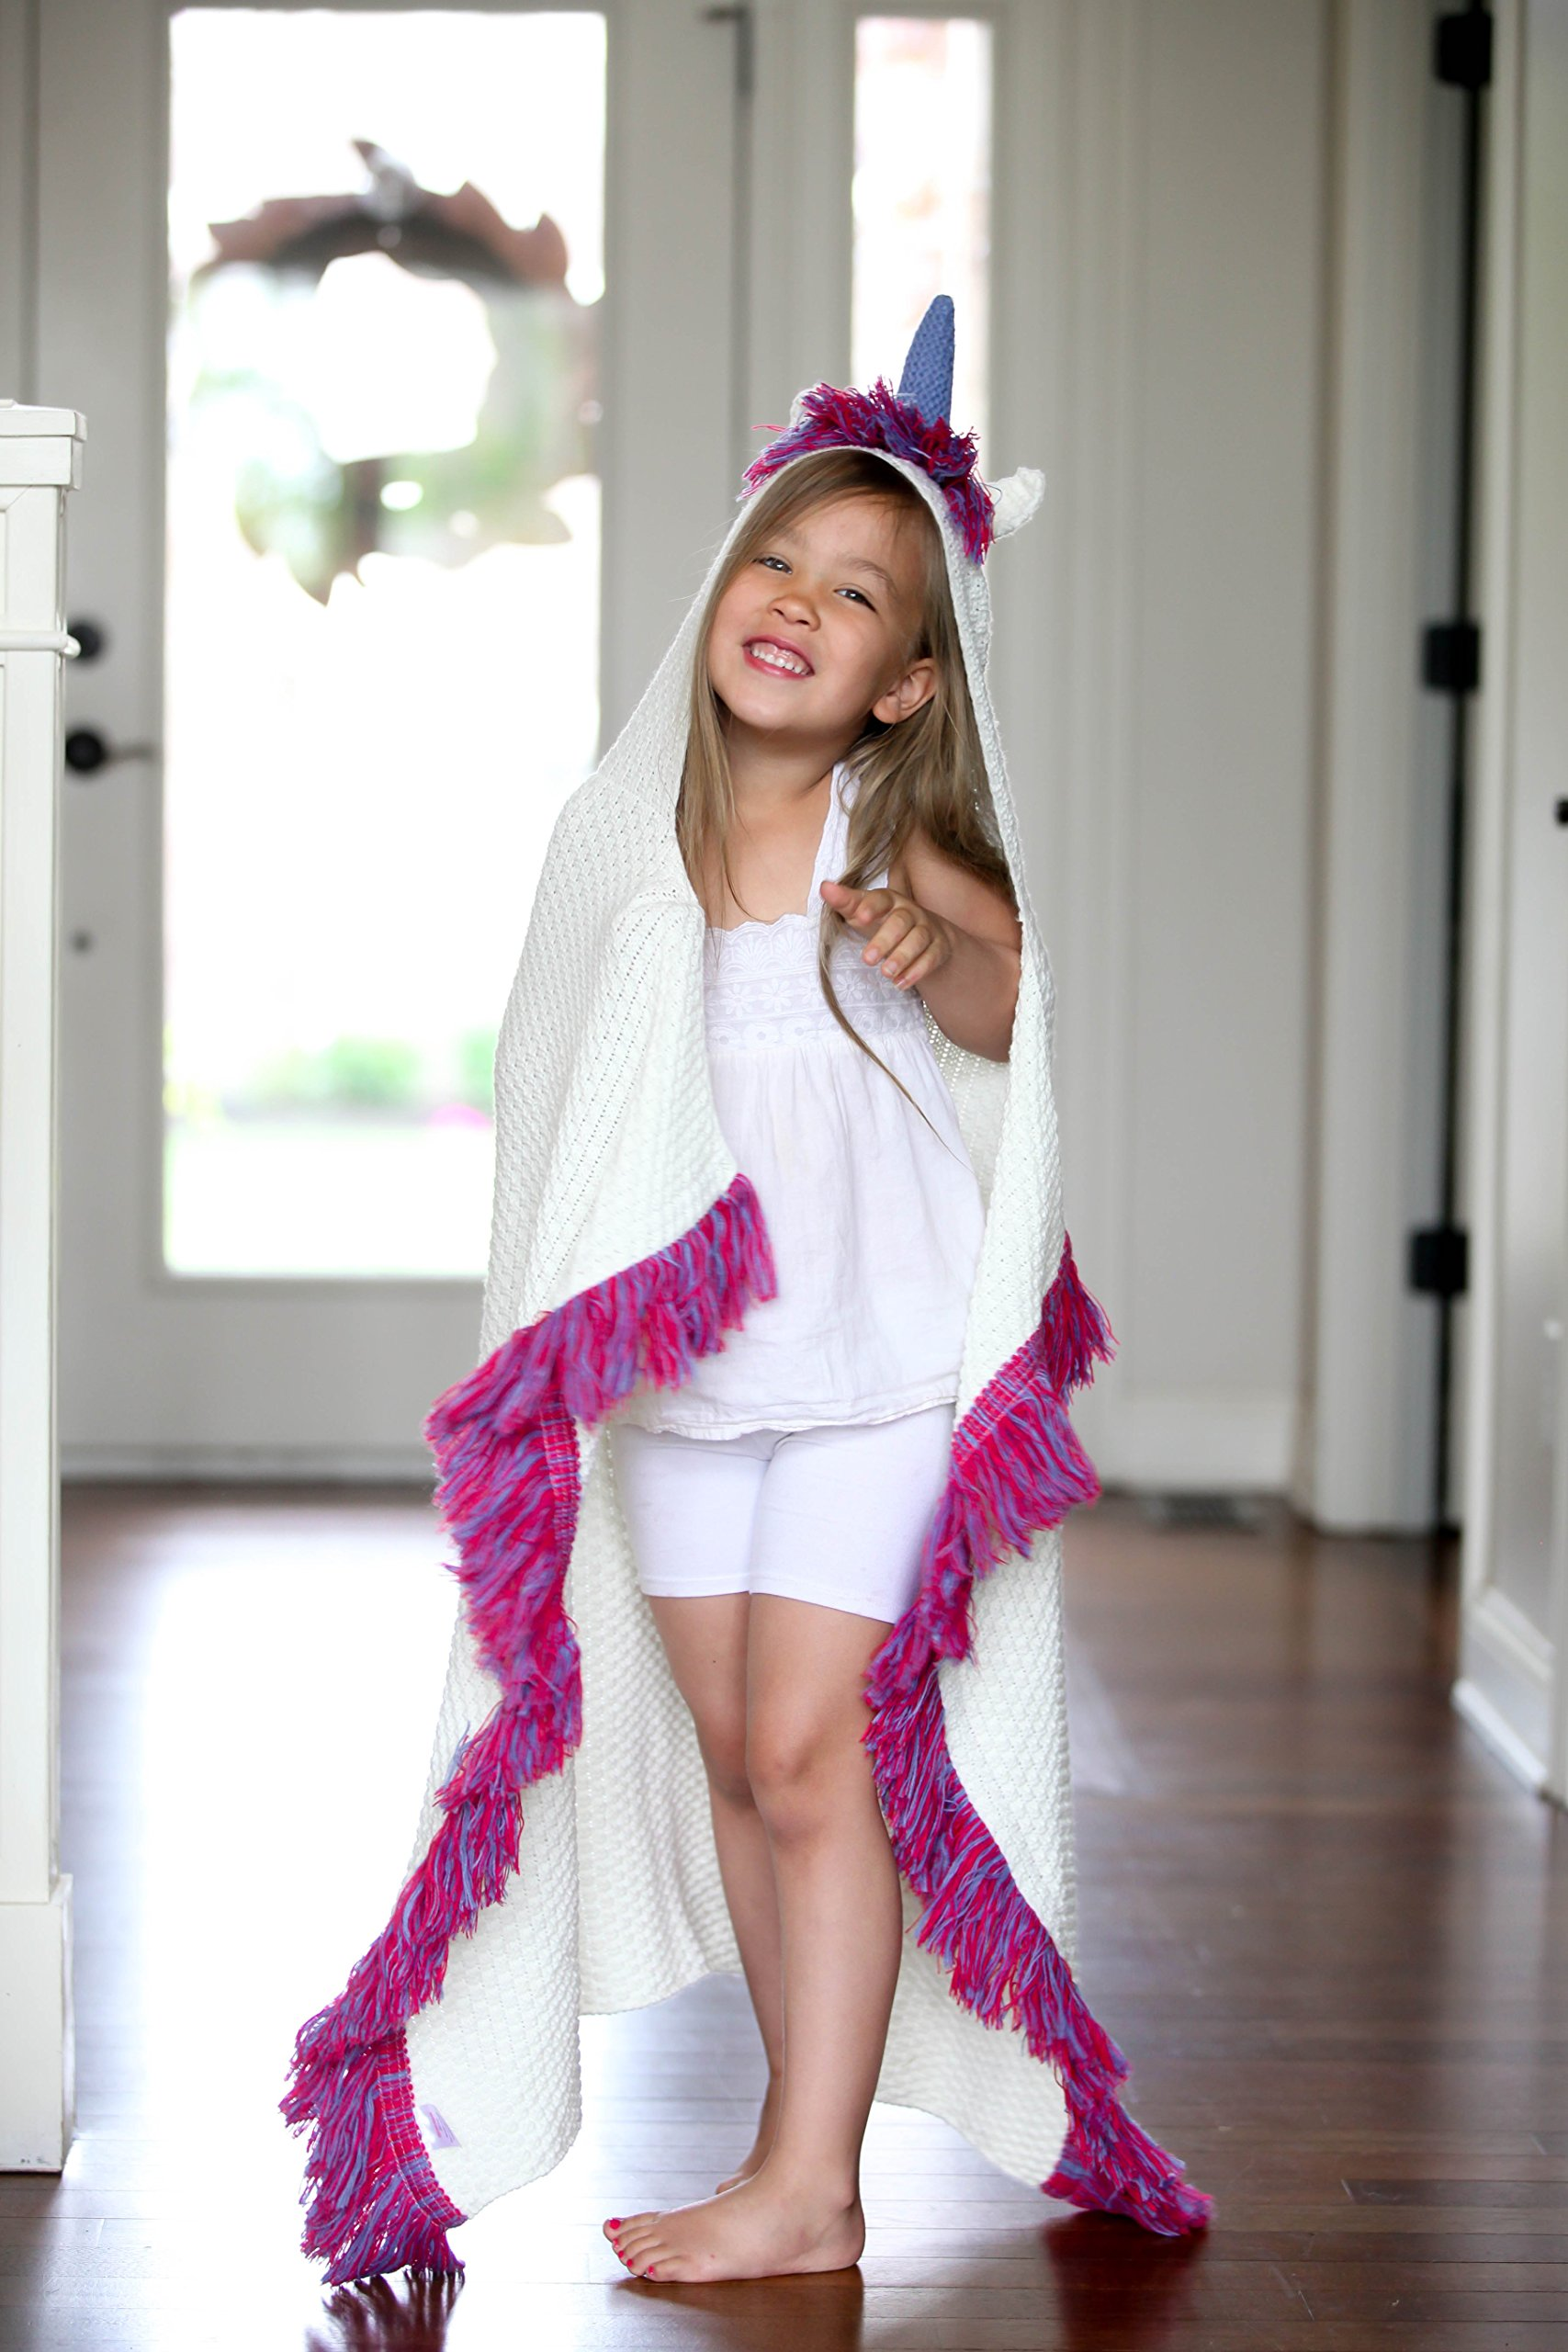 Born To Unicorn Blanket for Girls- Hooded, Kids Pink, Purple Wearable Crochet Knit w/Hood Throw Blankets Wrap, Toddlers Cute Plush Knitted Hoodie, Soft Kids Blanket Gift, Cozy Magic Cloak w/Hood by Born To Unicorn (Image #3)